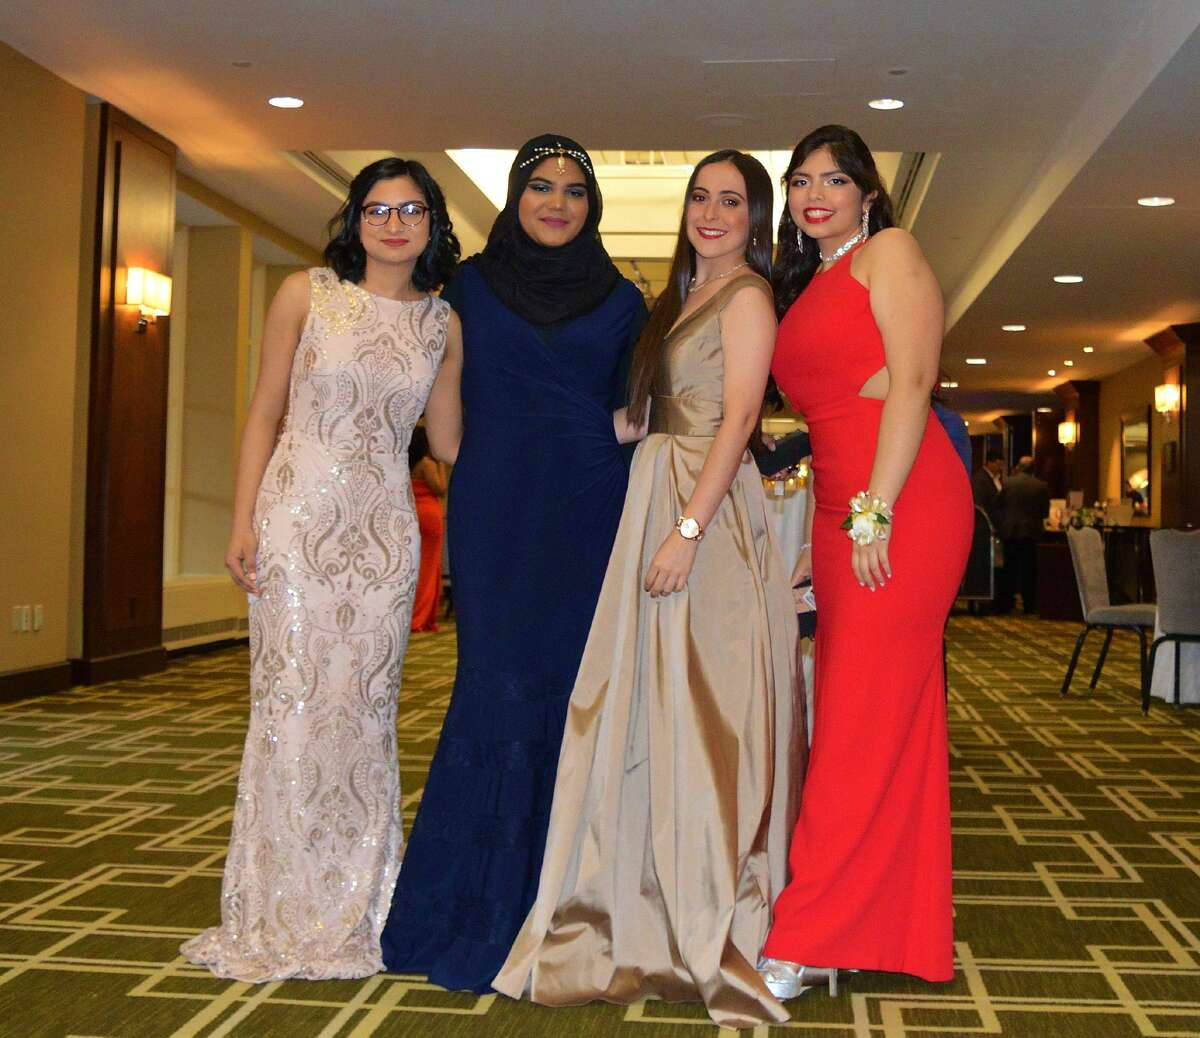 Stamford High School prom Stamford High School held its prom at the Greenwich Hyatt on May 31, 2019. Were you SEEN? Click here to see more photos